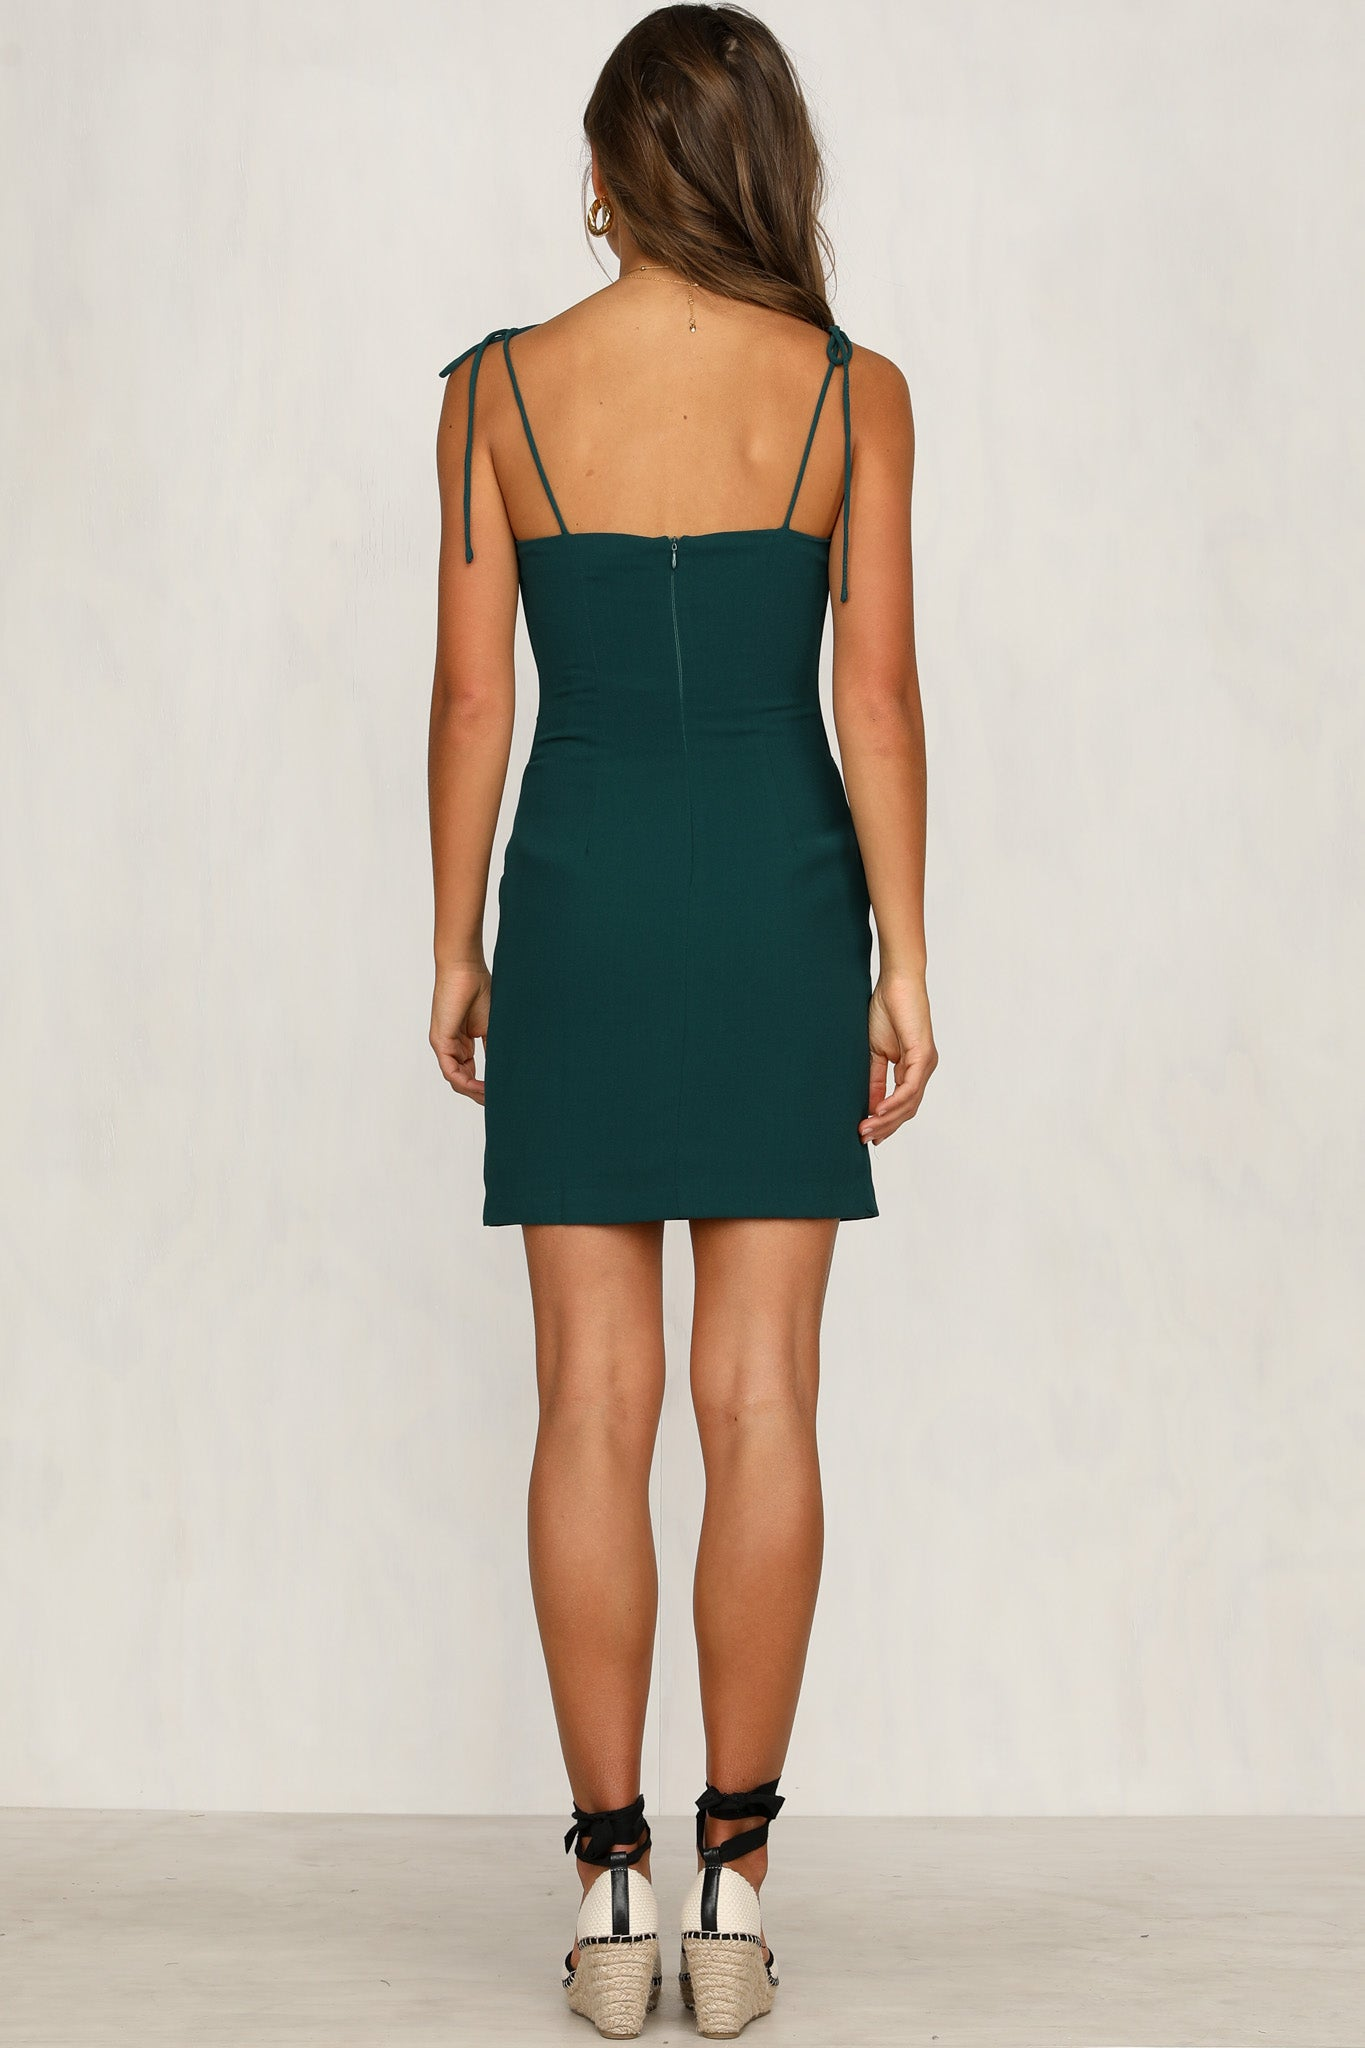 Follow Me Dress (Emerald)